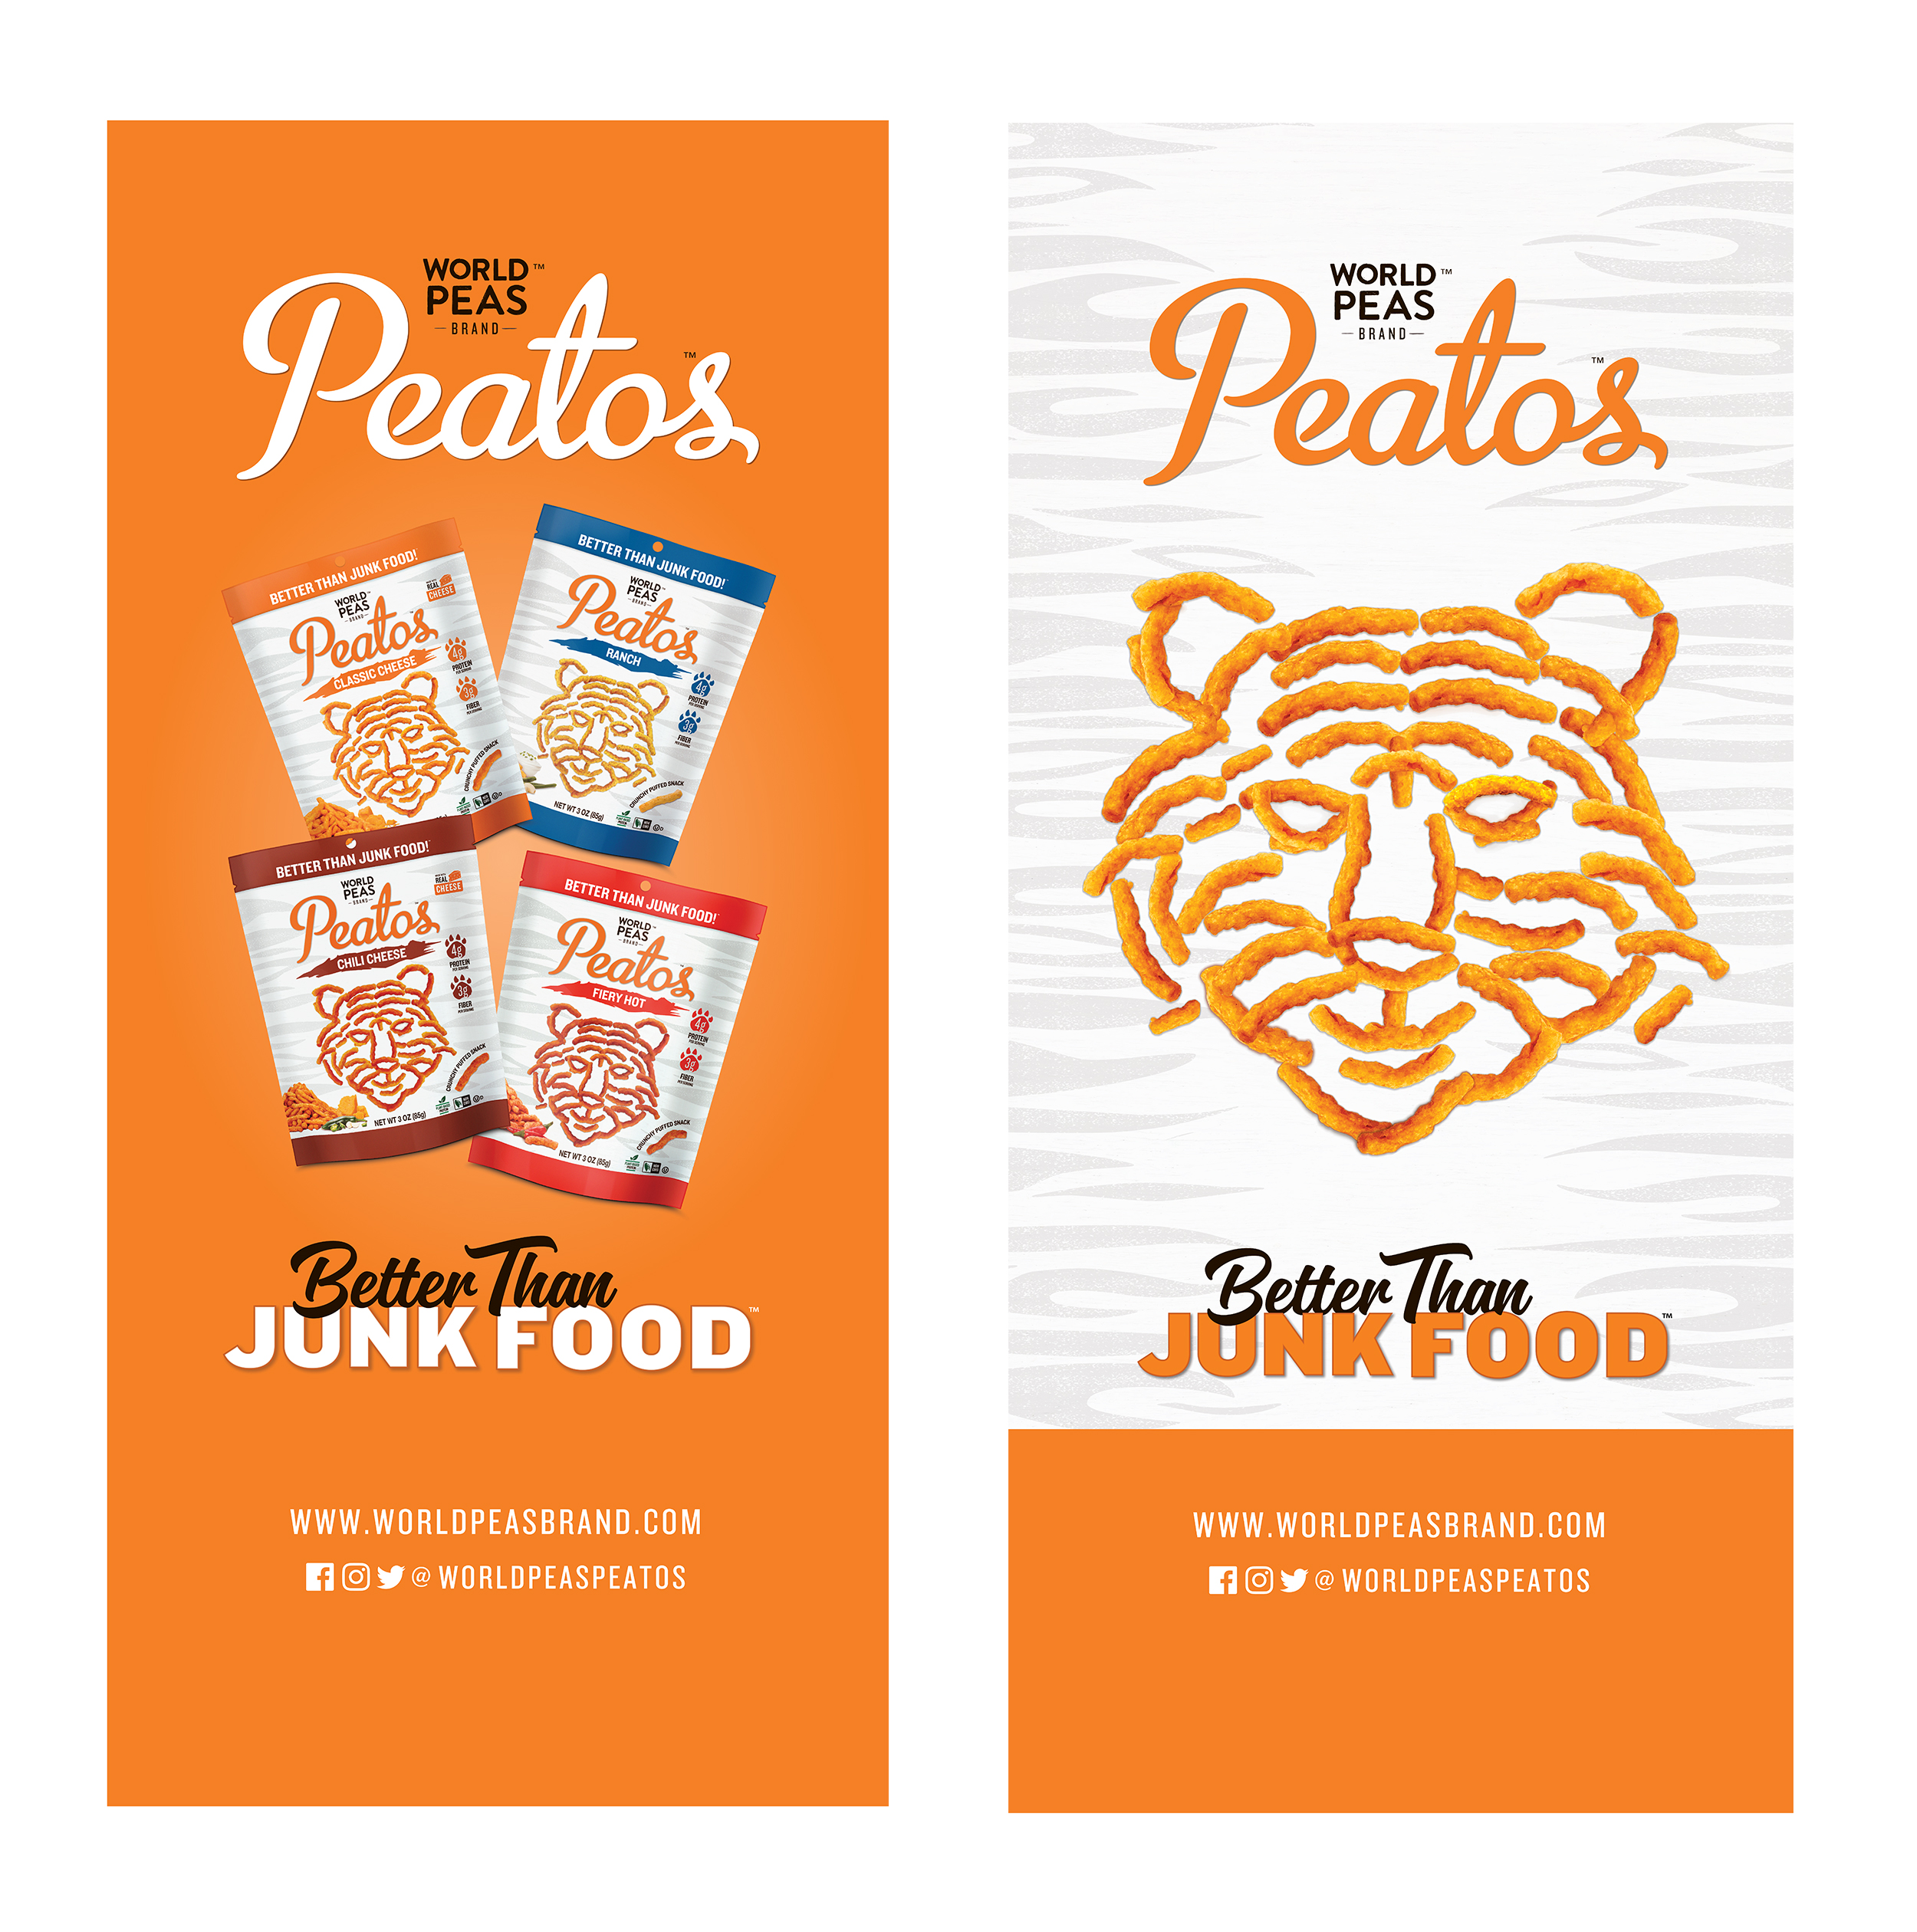 Trade events pull up banners. Illustrator CC.